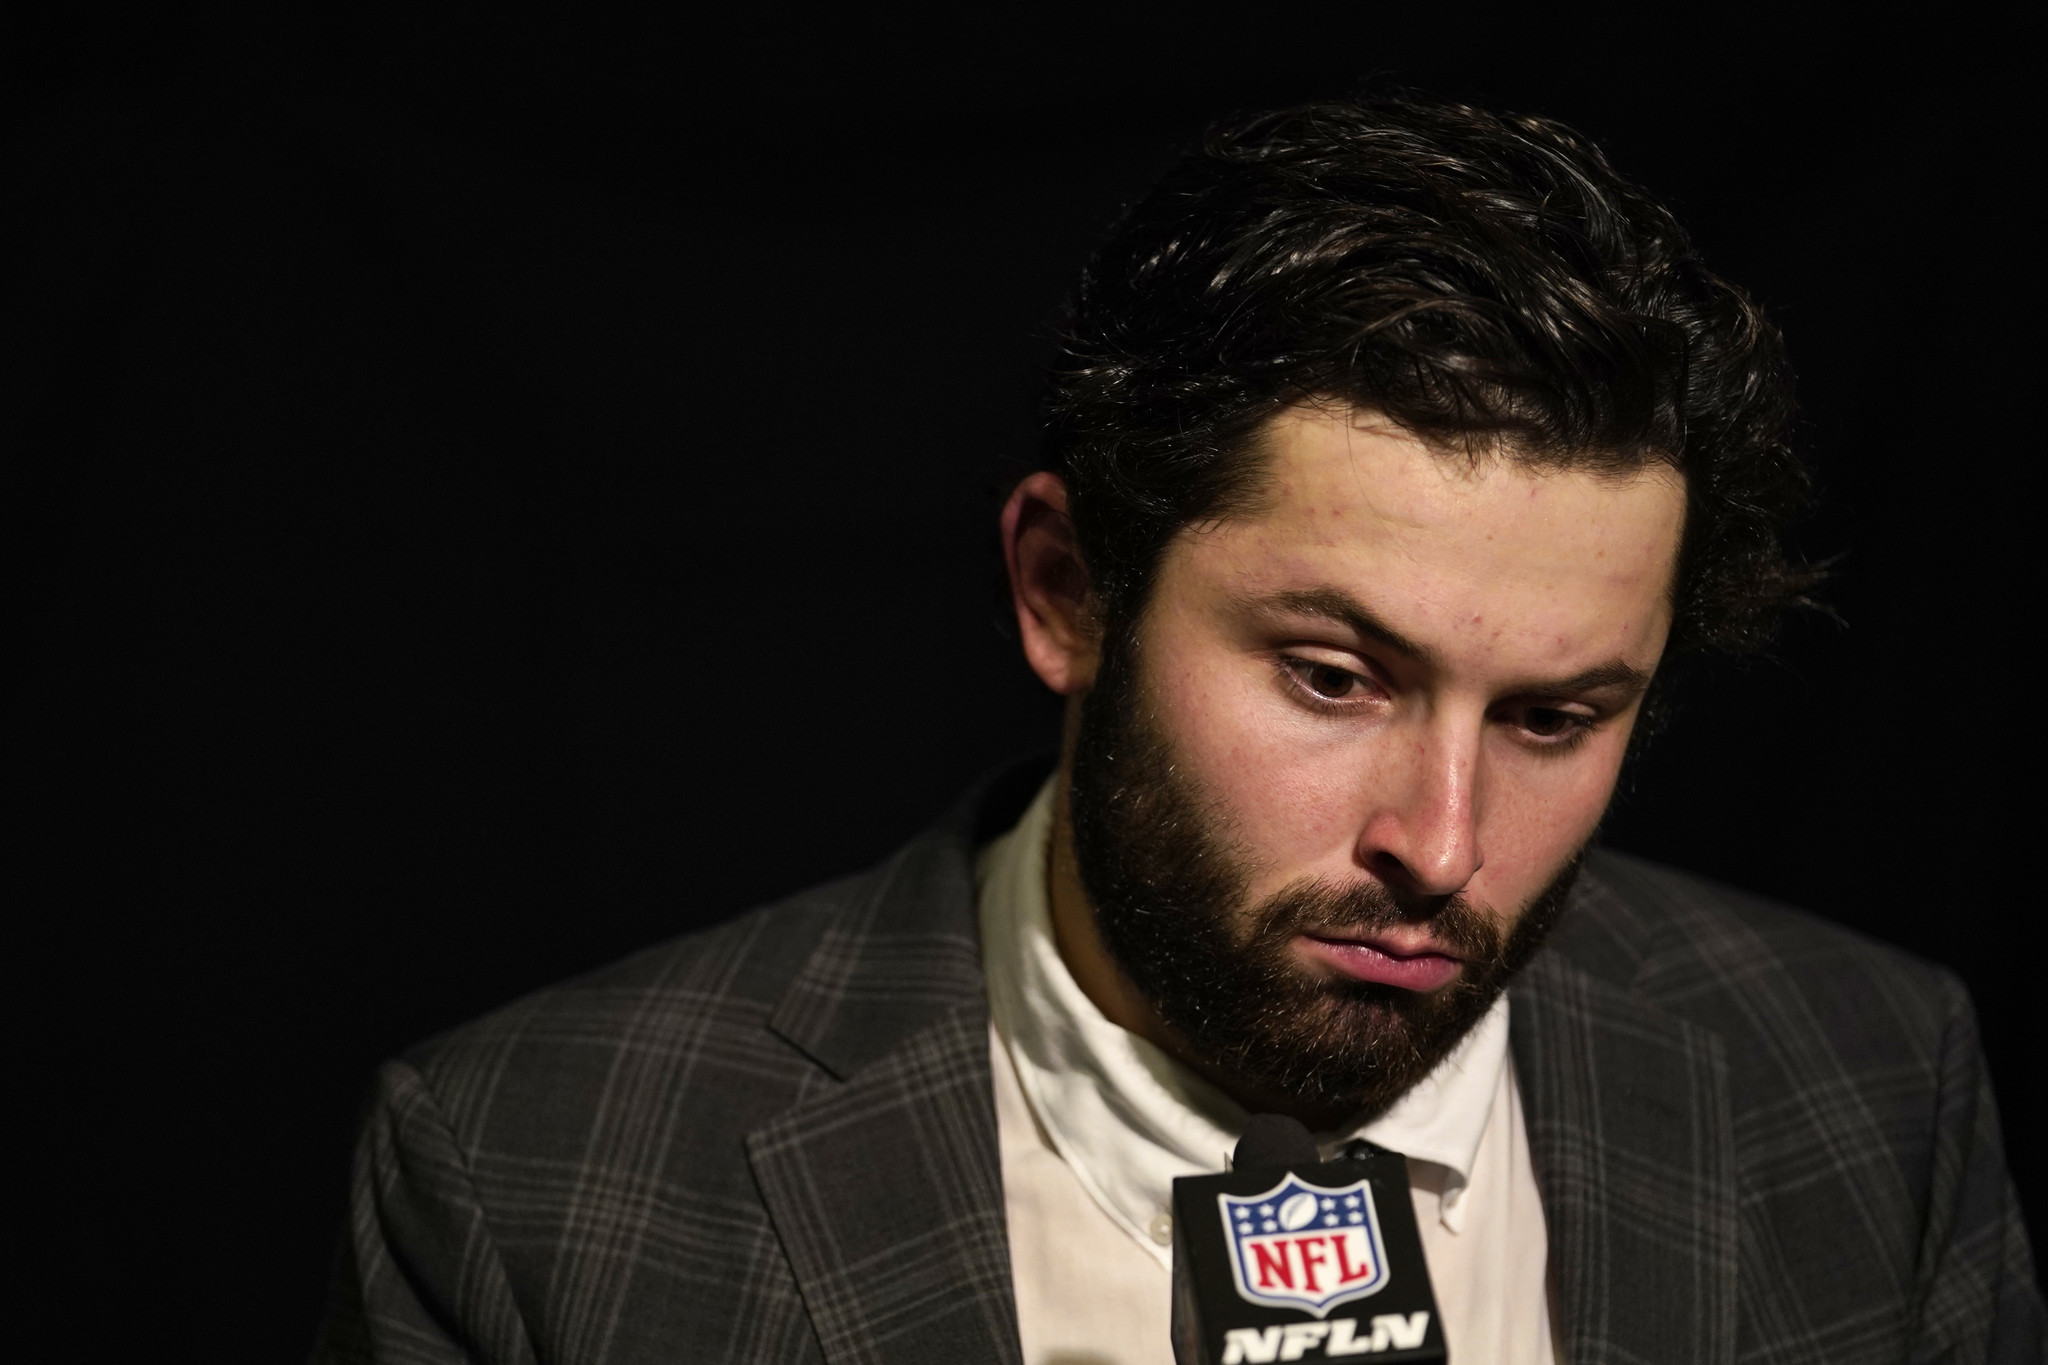 ESPN Cleveland suspends Tony Grossi for calling Baker Mayfield 'a f--king midget' while his mic was still on